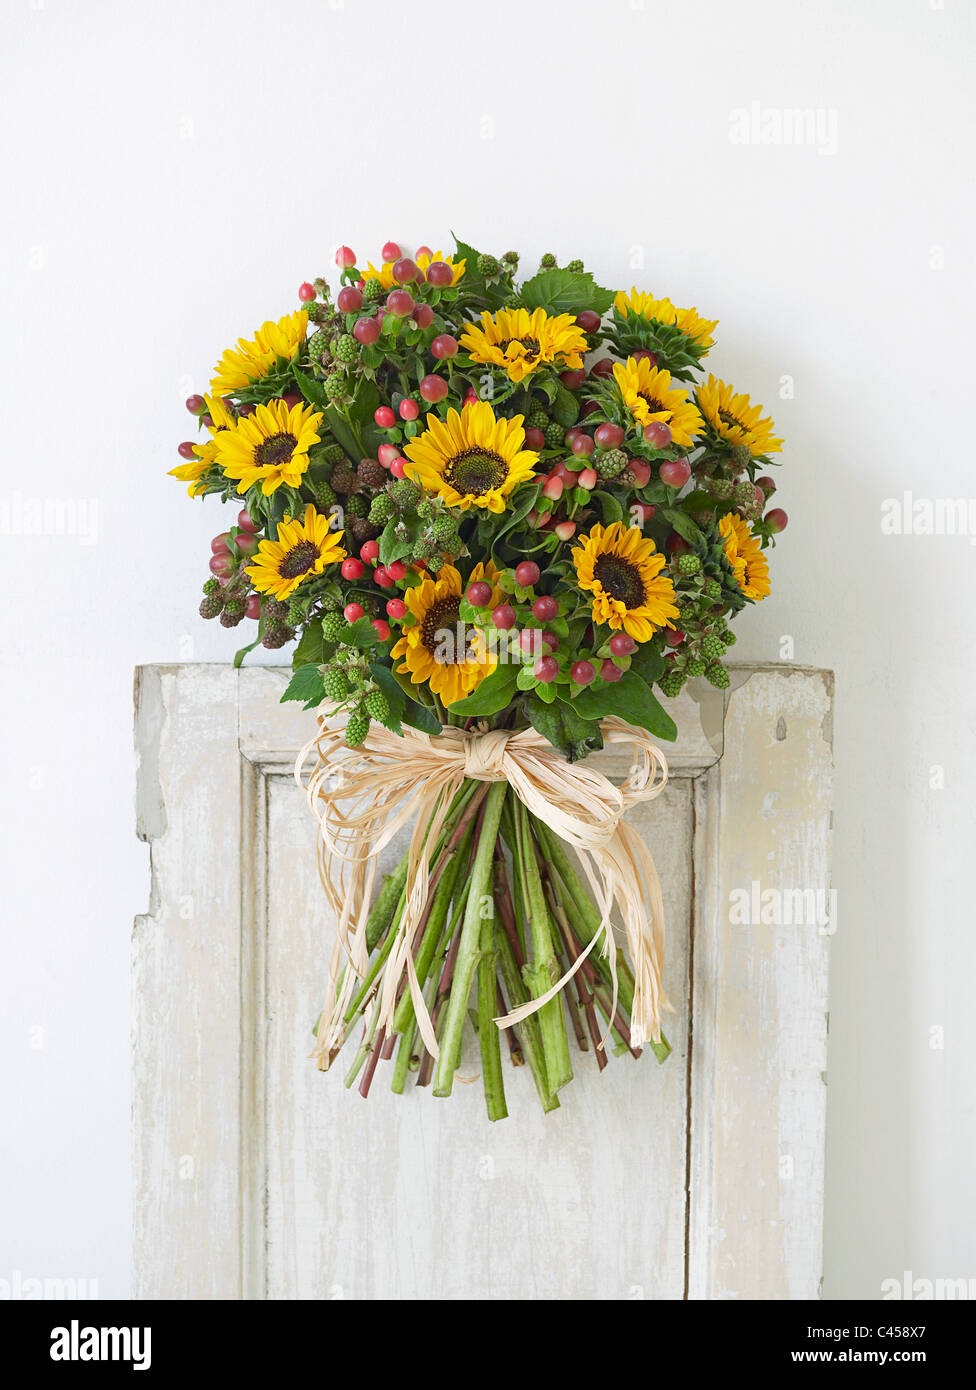 Bunch of flowers including sunflowers and berries, close-up - Stock Image